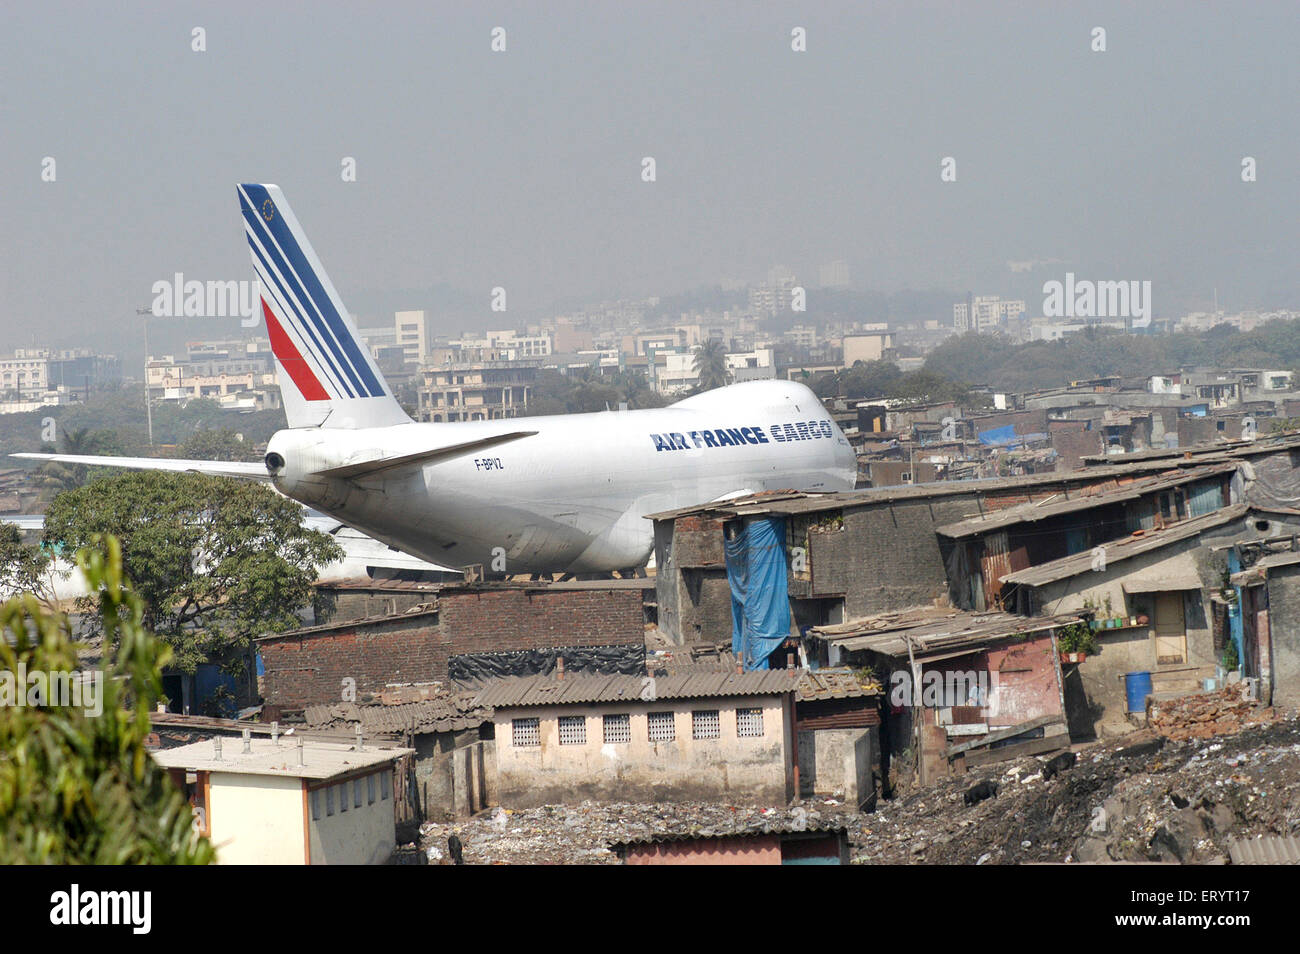 Air France cargo plane prepare to take off from Sahar airport Chatrapati Shivaji International airport in Bombay - Stock Image